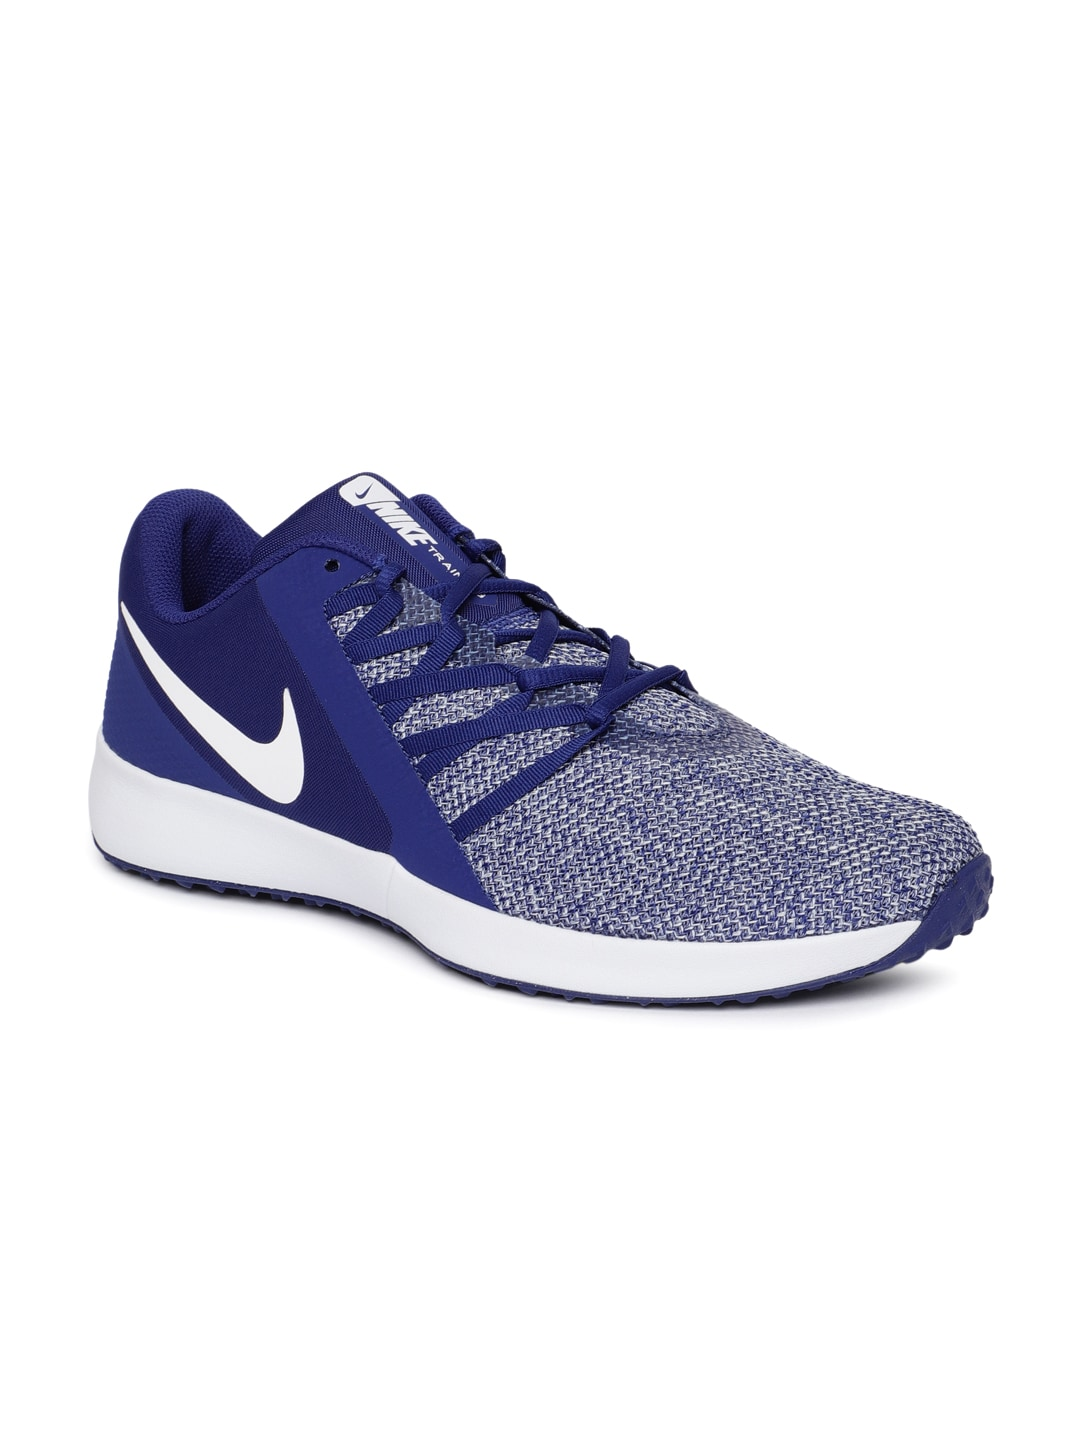 cheap for discount 8c214 bc3bc Nike Training Shoes - Buy Nike Training Shoes For Men   Women in India